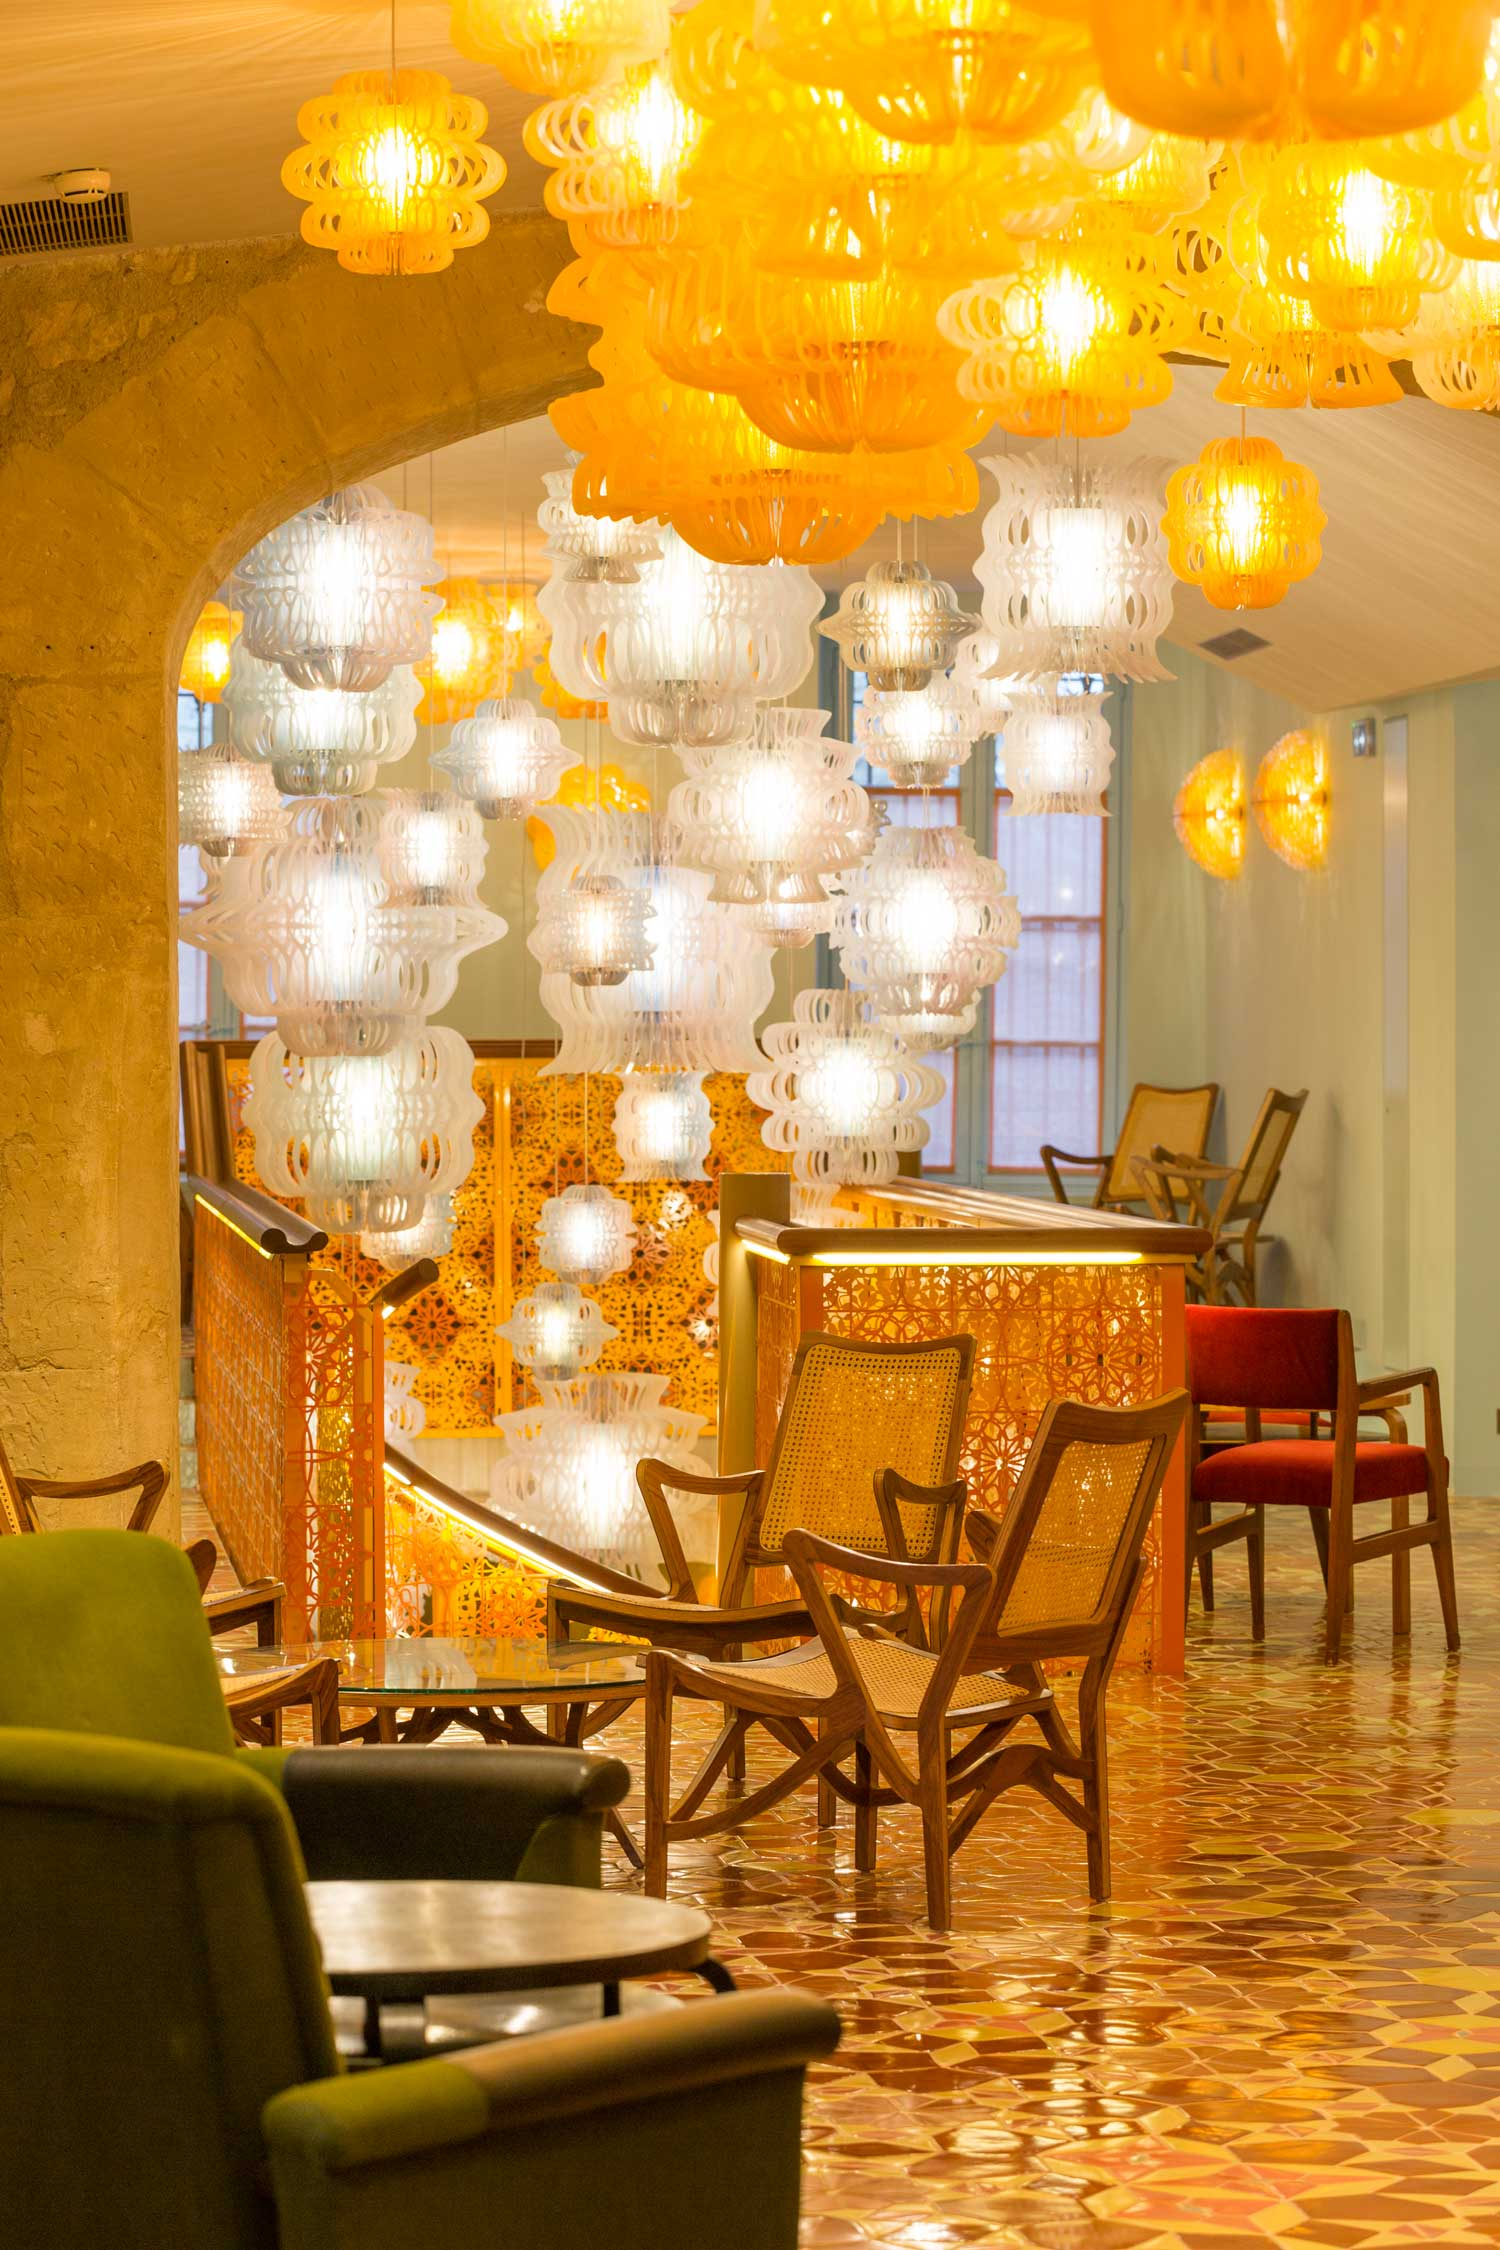 L Arlatan Hotel In Arles France With Interiors By Jorge